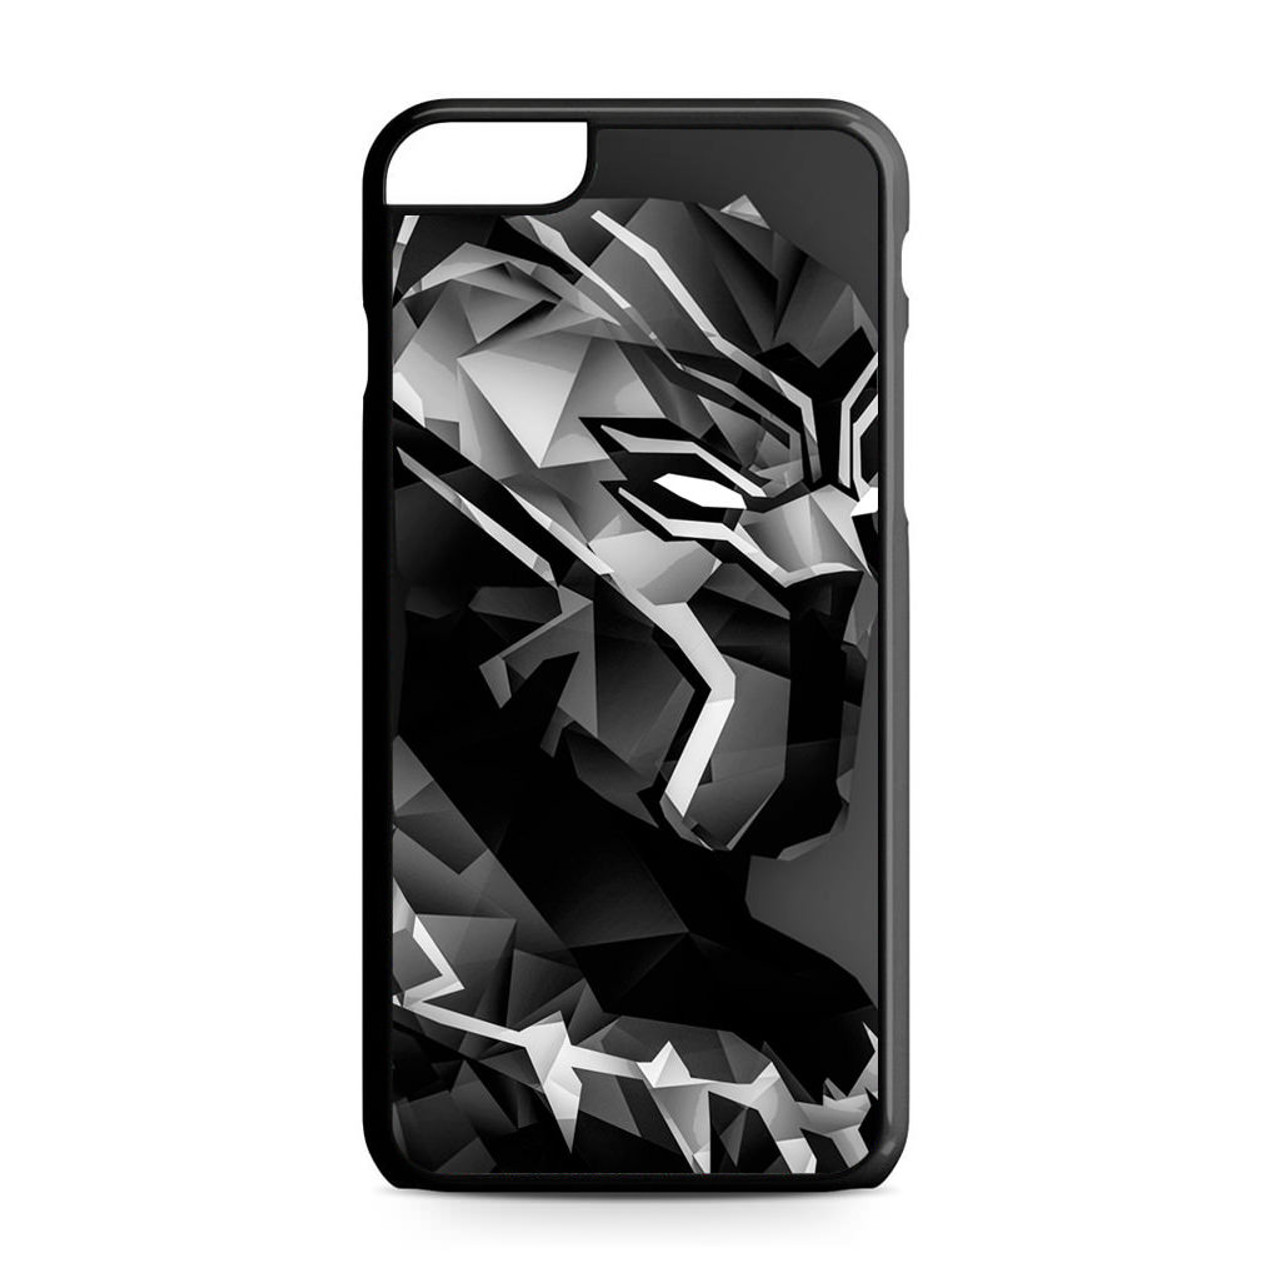 iphone 6 case black panther